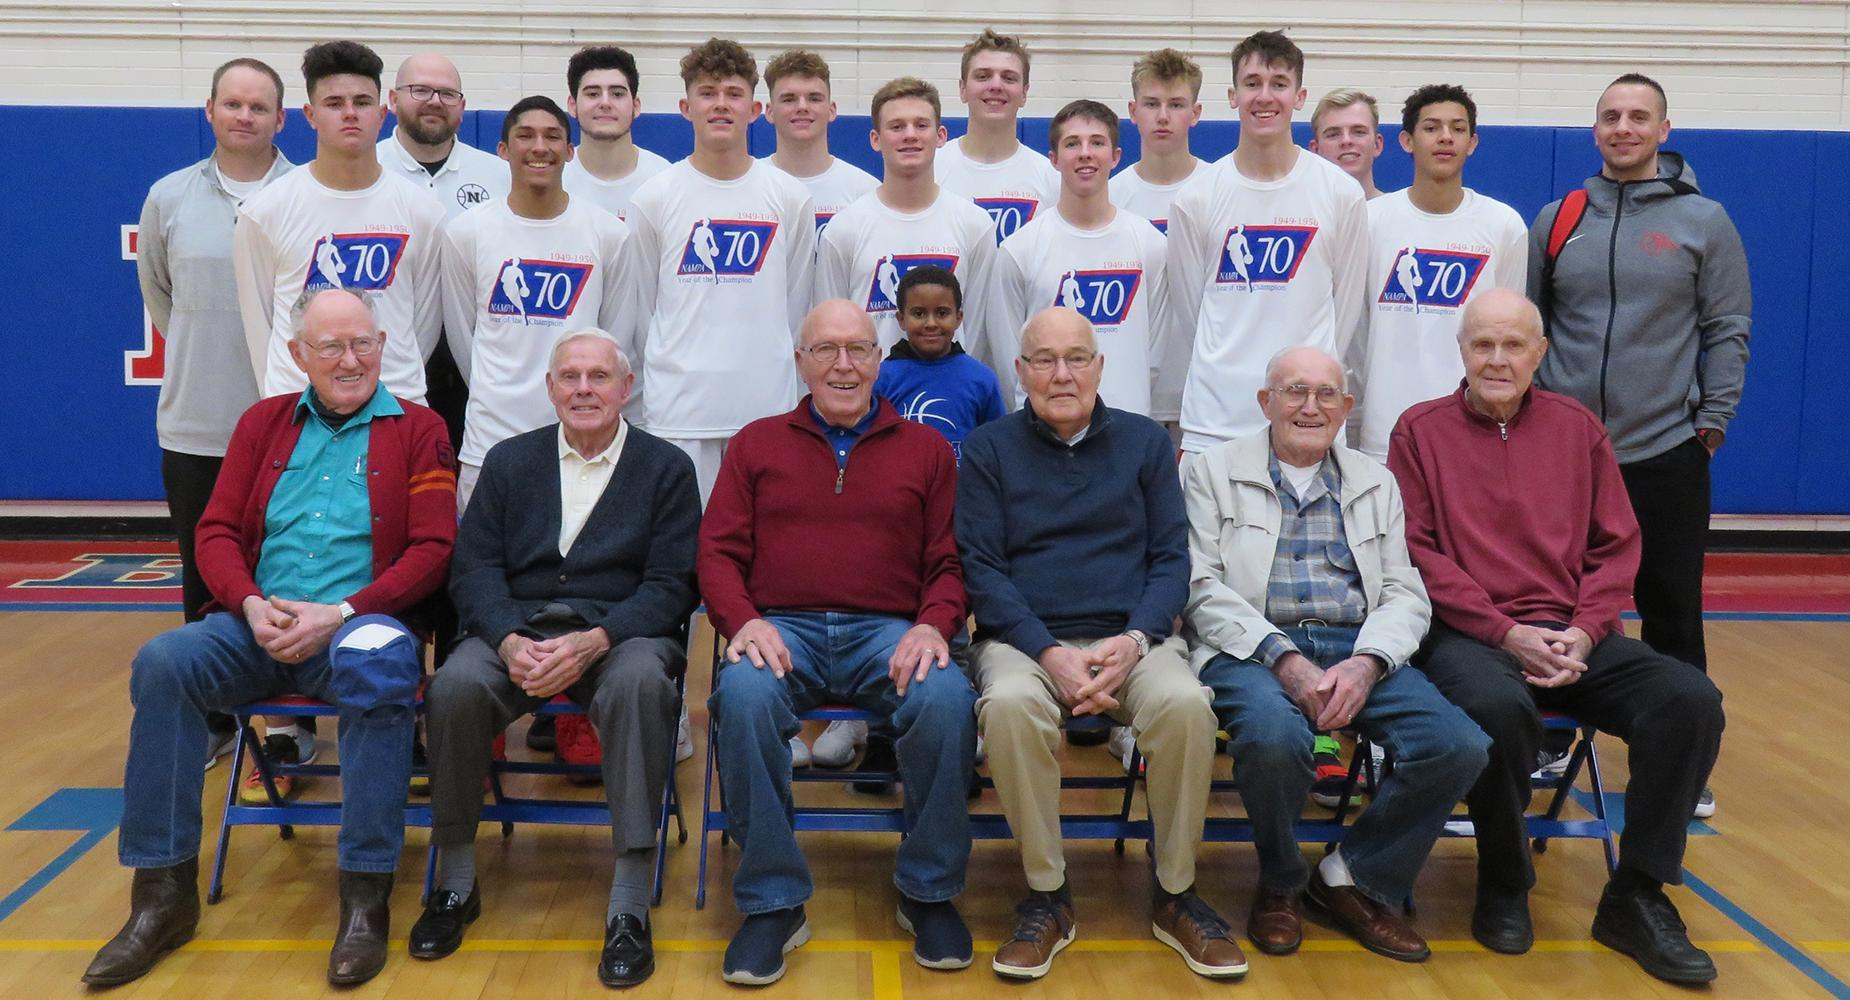 NHS basketball team pose with 1949 alumni.